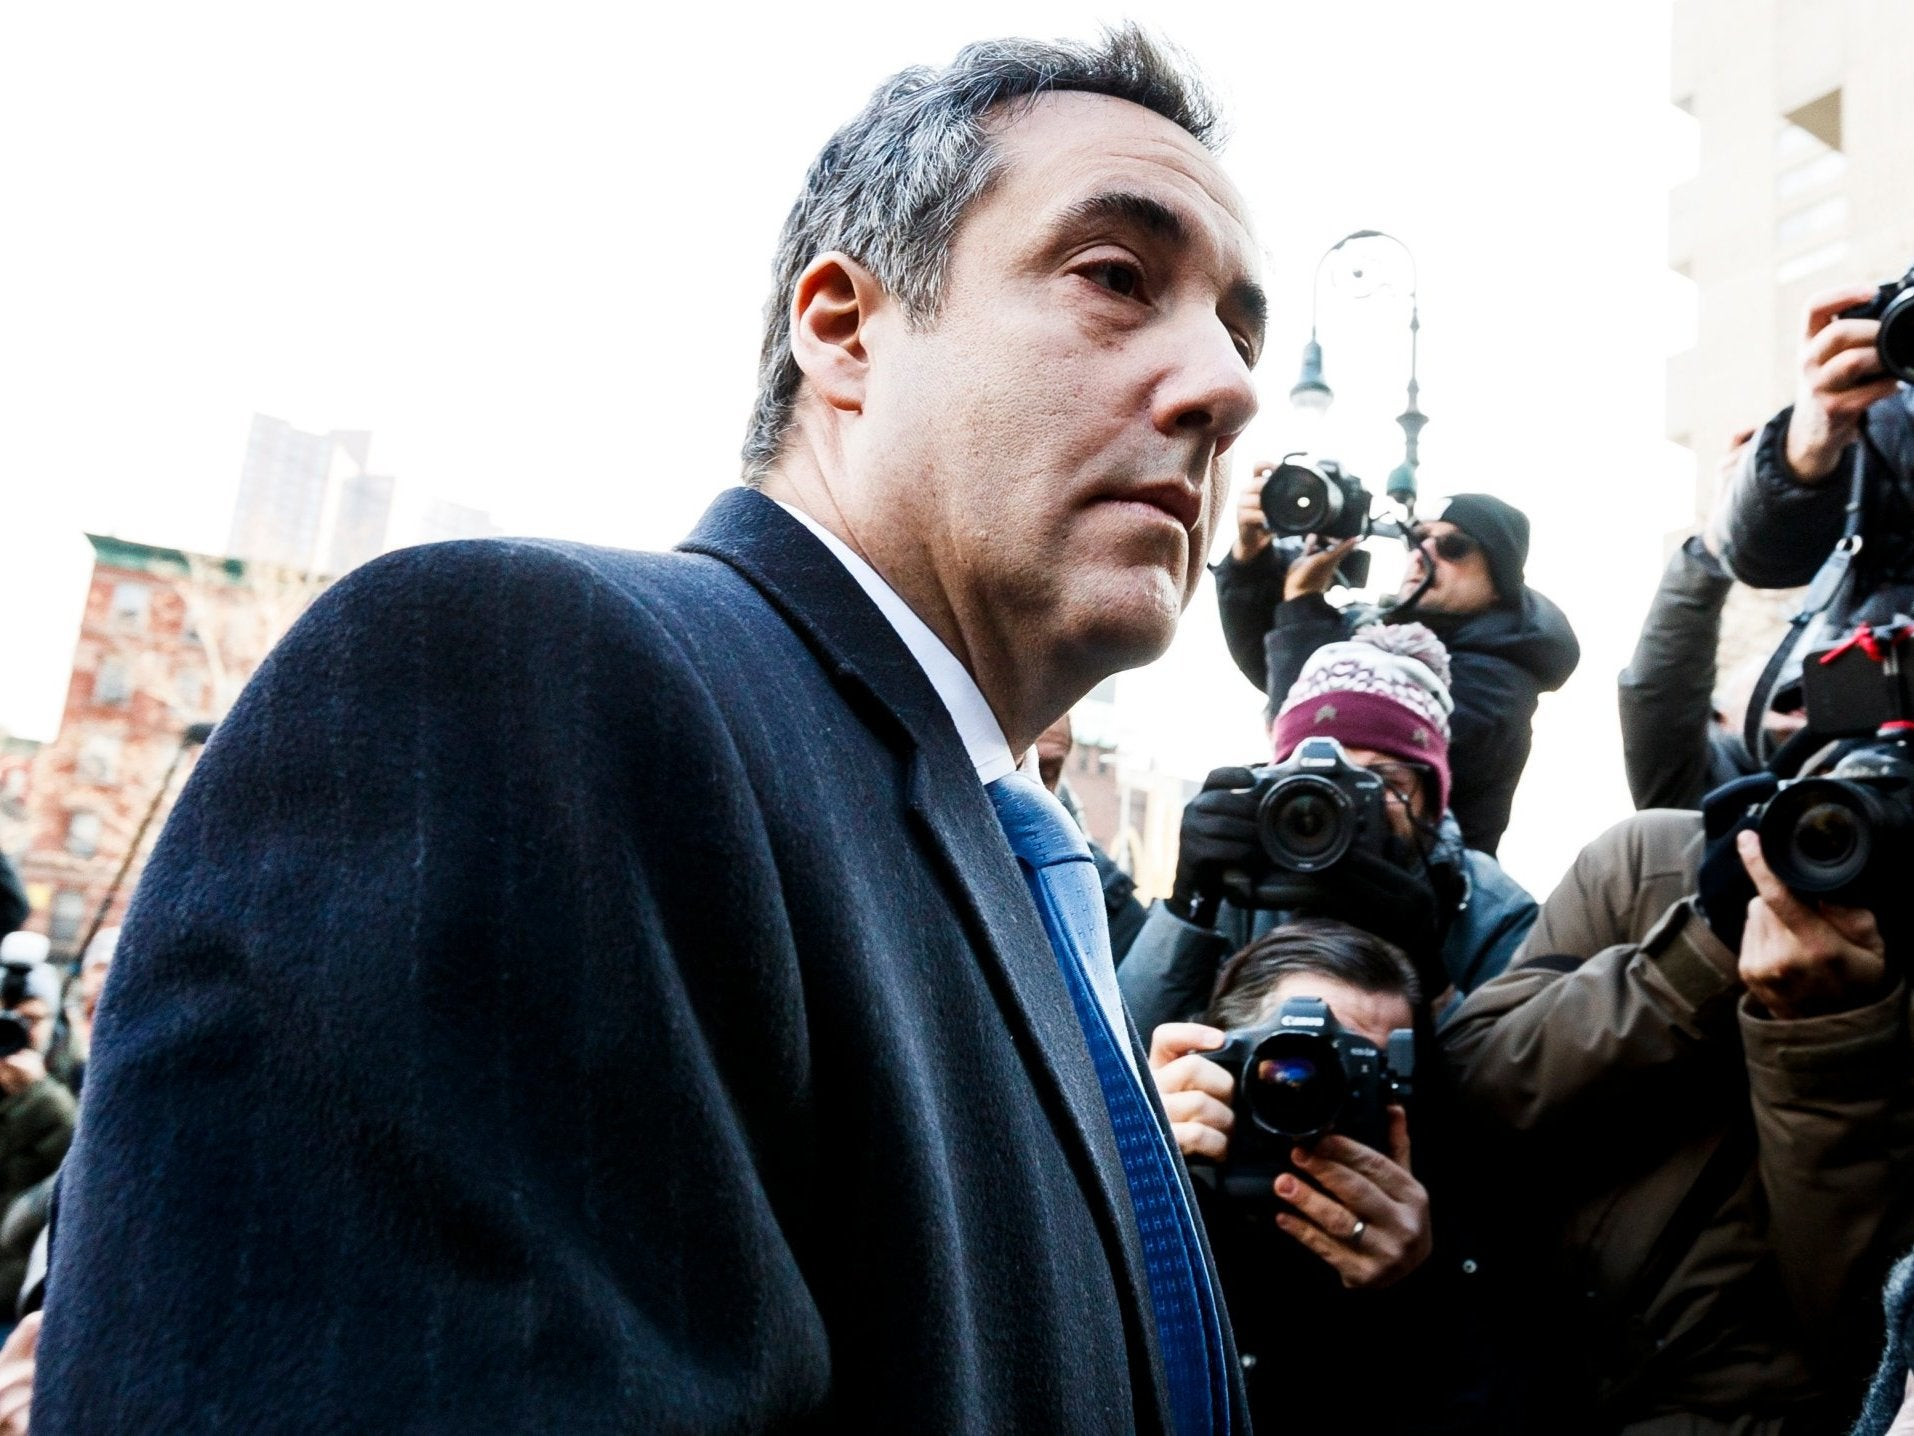 Trump 'directed me' to pay Stormy Daniels hush money and knew it was wrong, Michael Cohen claims